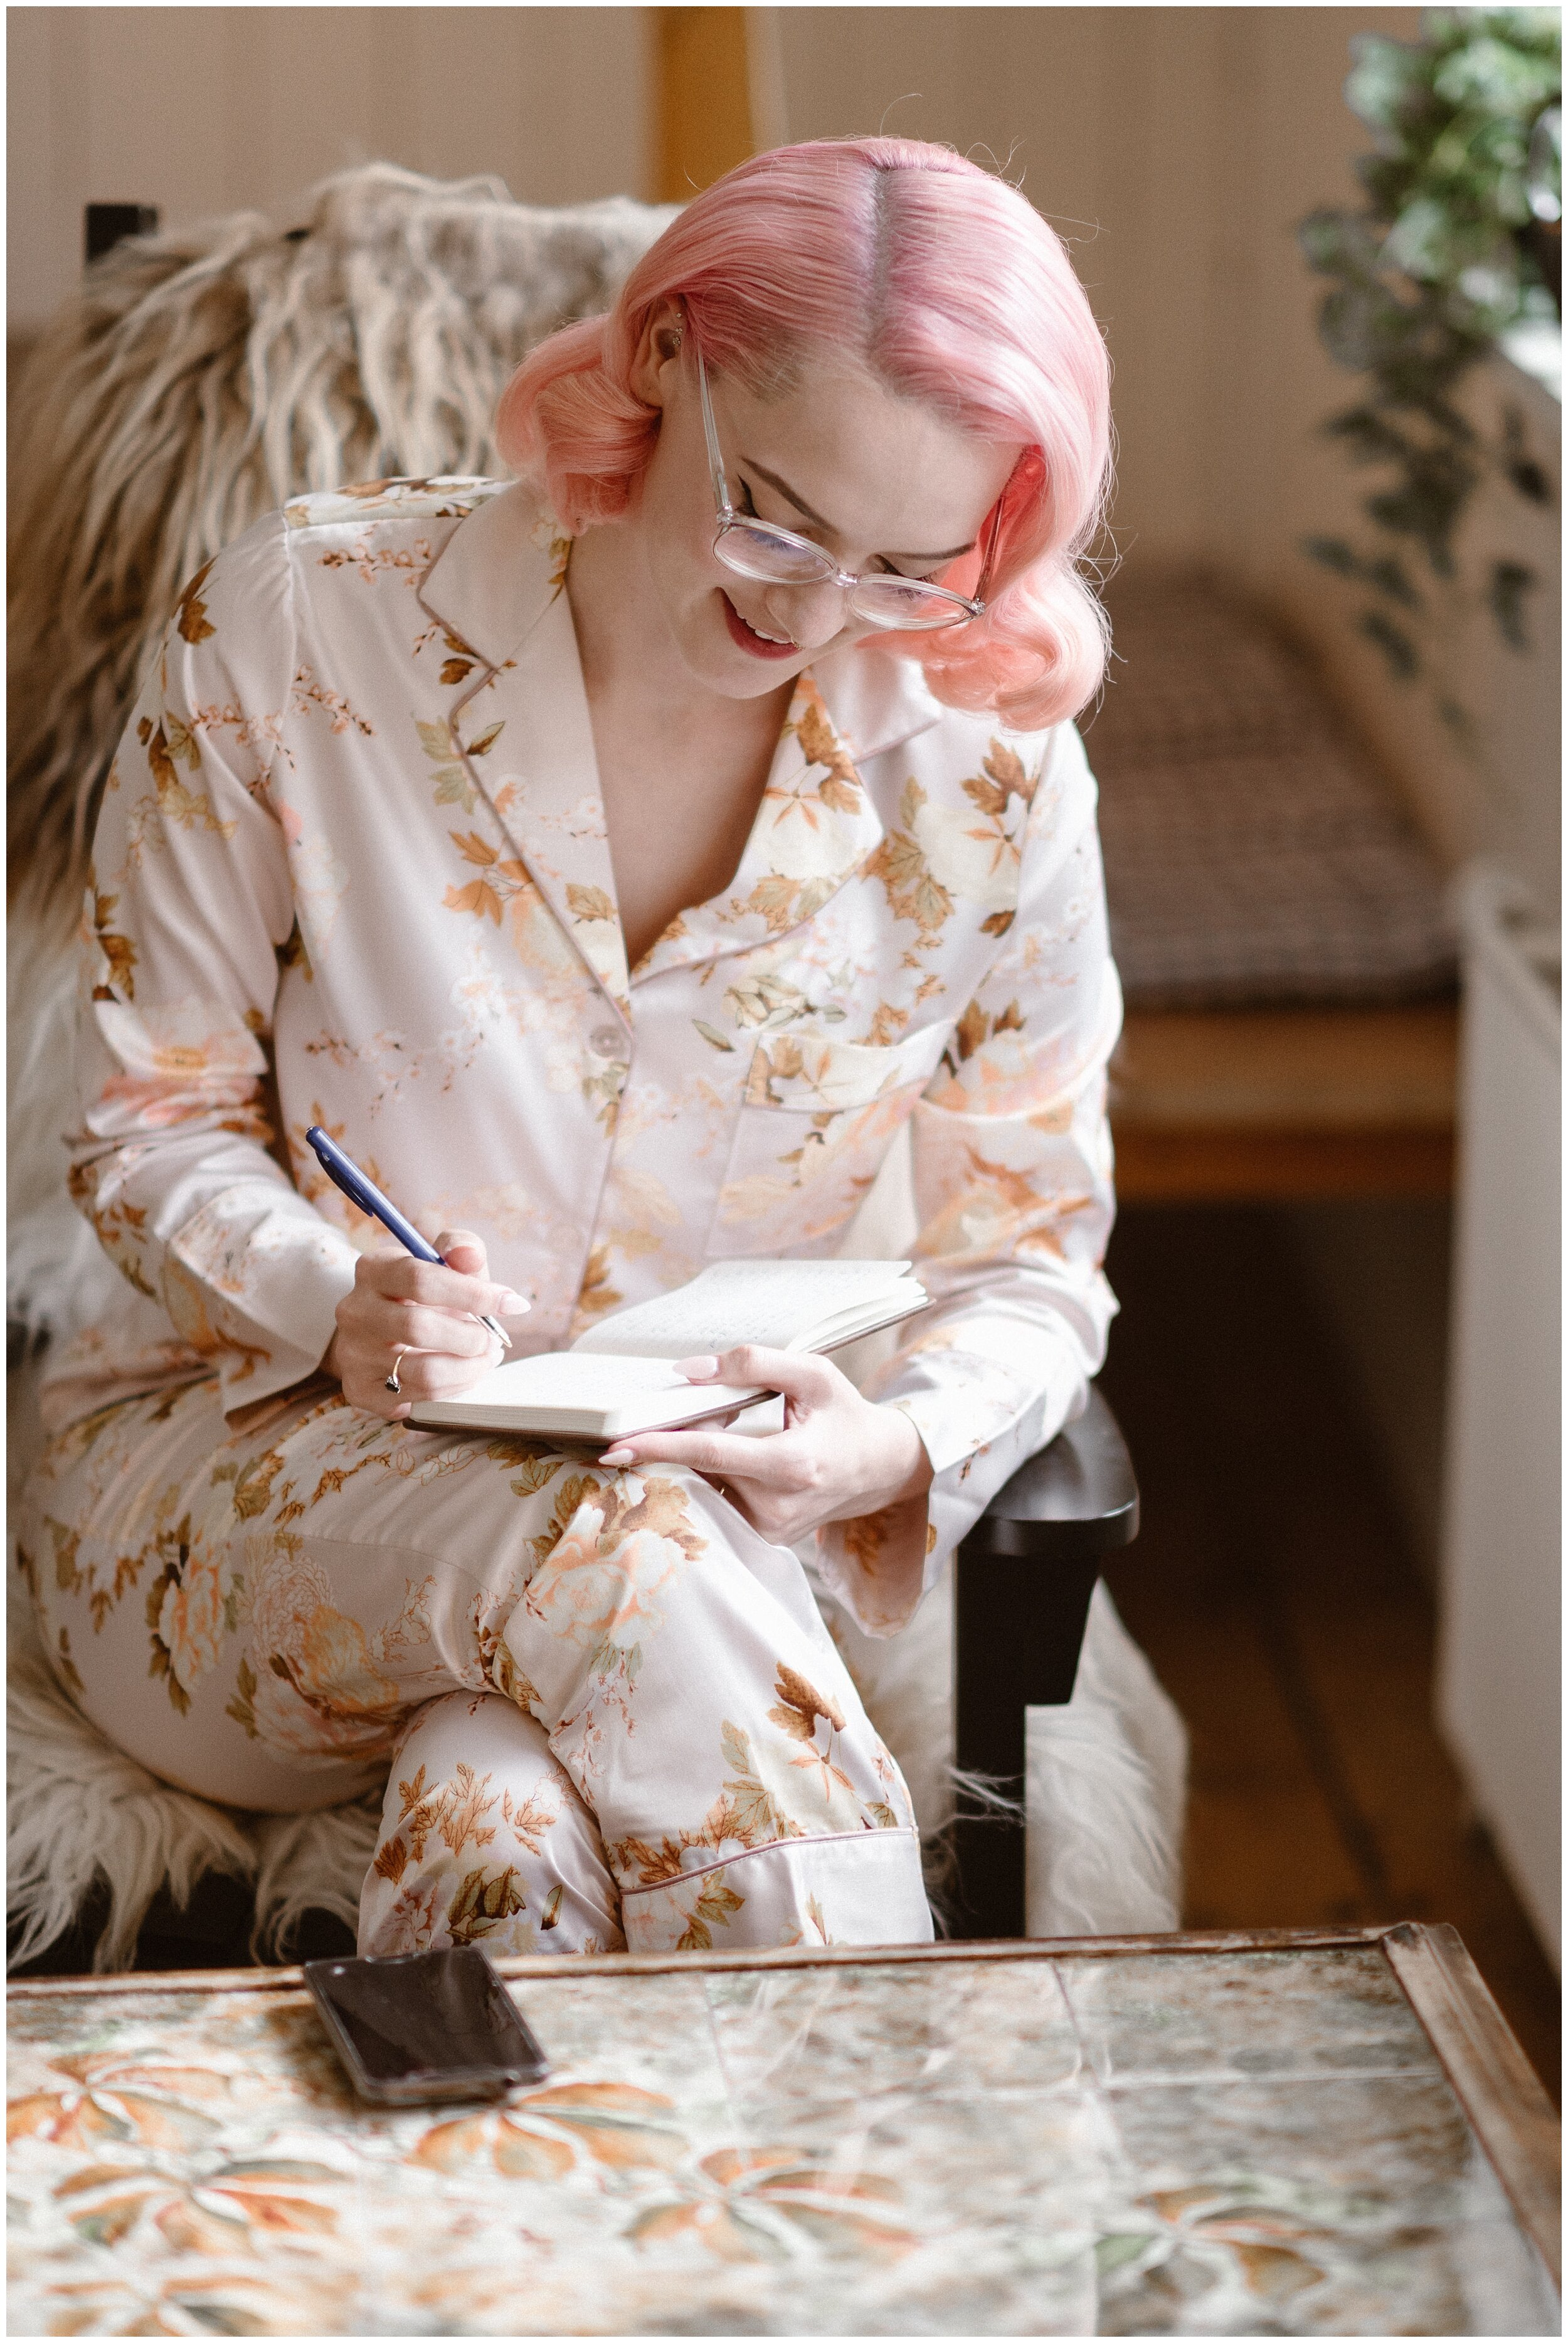 The bride, Elaura, writes in her handmade vow book as she reflects on what she'd like to say to her almost-husband, Daryn, during their elopement ceremony. Elaura and Daryn's destination elopement in the Faroe Islands was all about their own vintage vibe, equipped with glass coke bottles, pastel pink hair, and handmade bows for Daryn's tux.